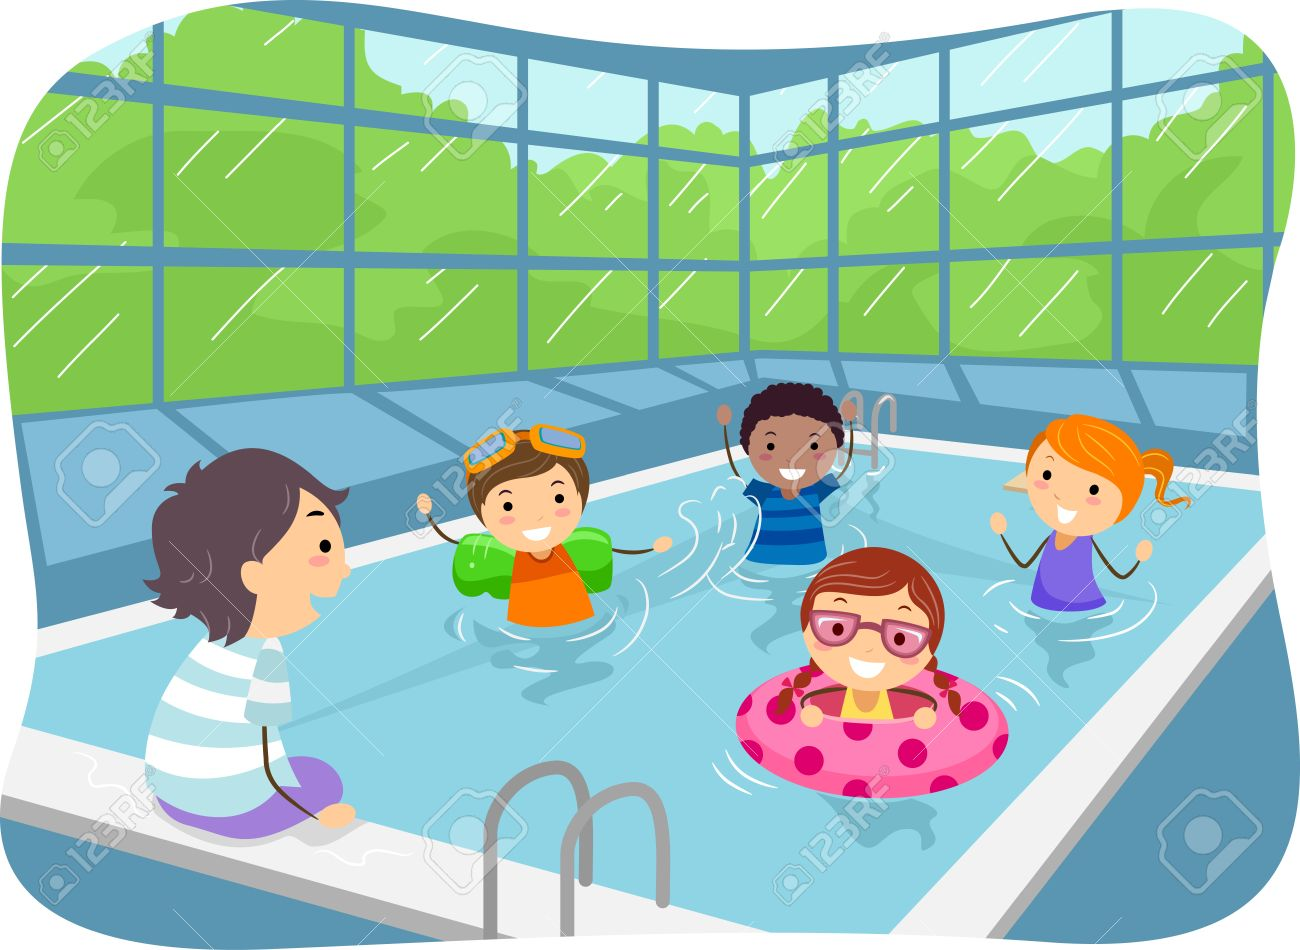 hight resolution of illustration of kids swimming in an indoor swimming pool stock vector 35170108